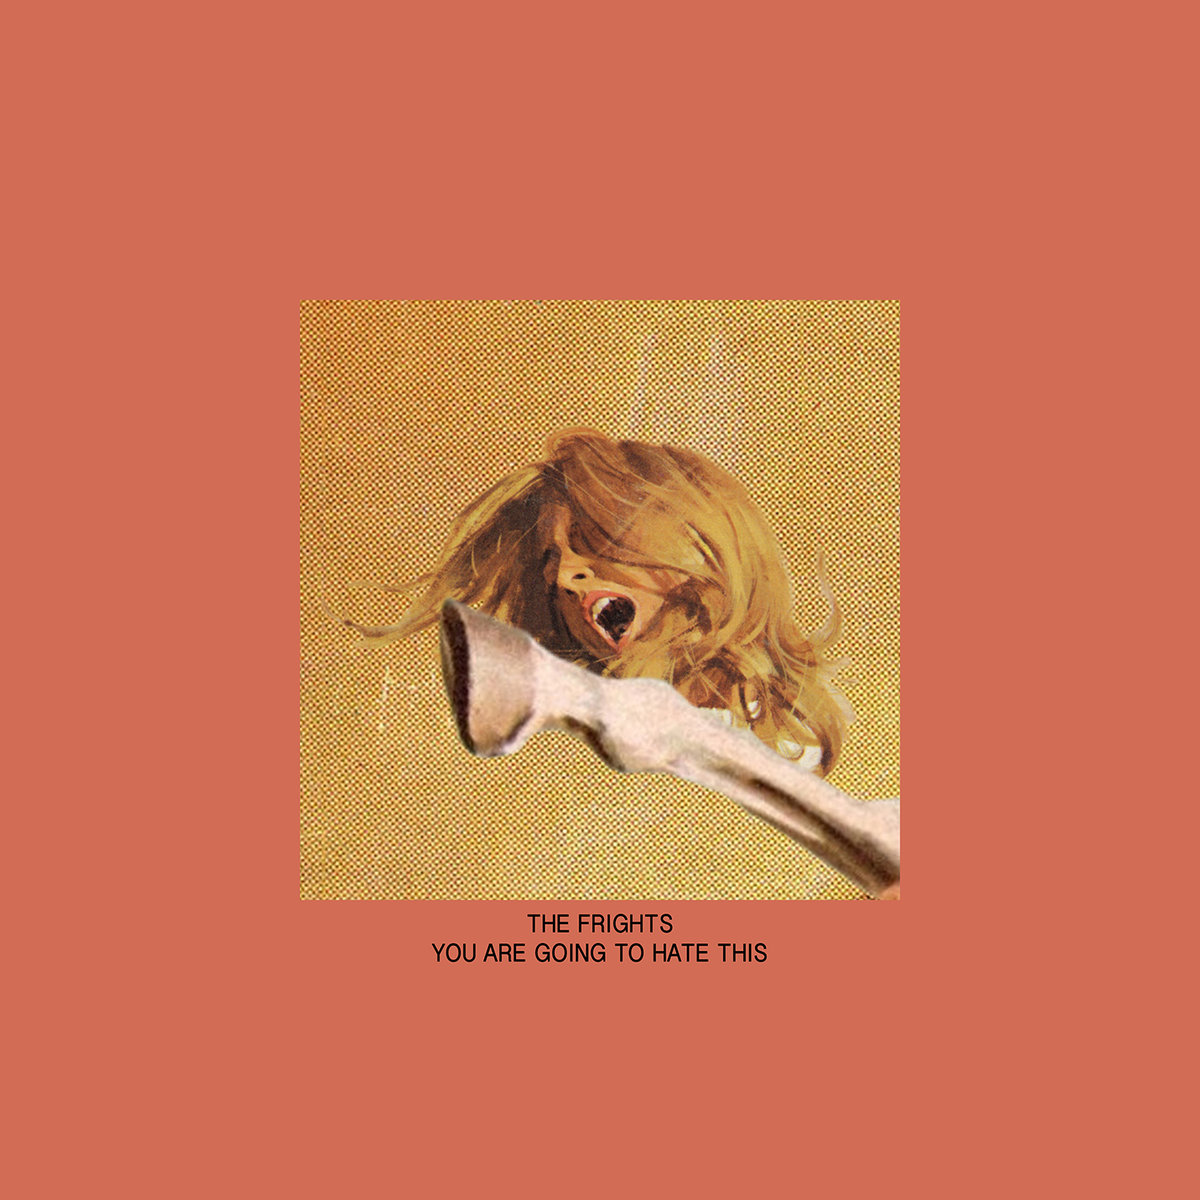 THE FRIGHTS   You Are Going To Hate This, 2016, Zac Carper, 33:00